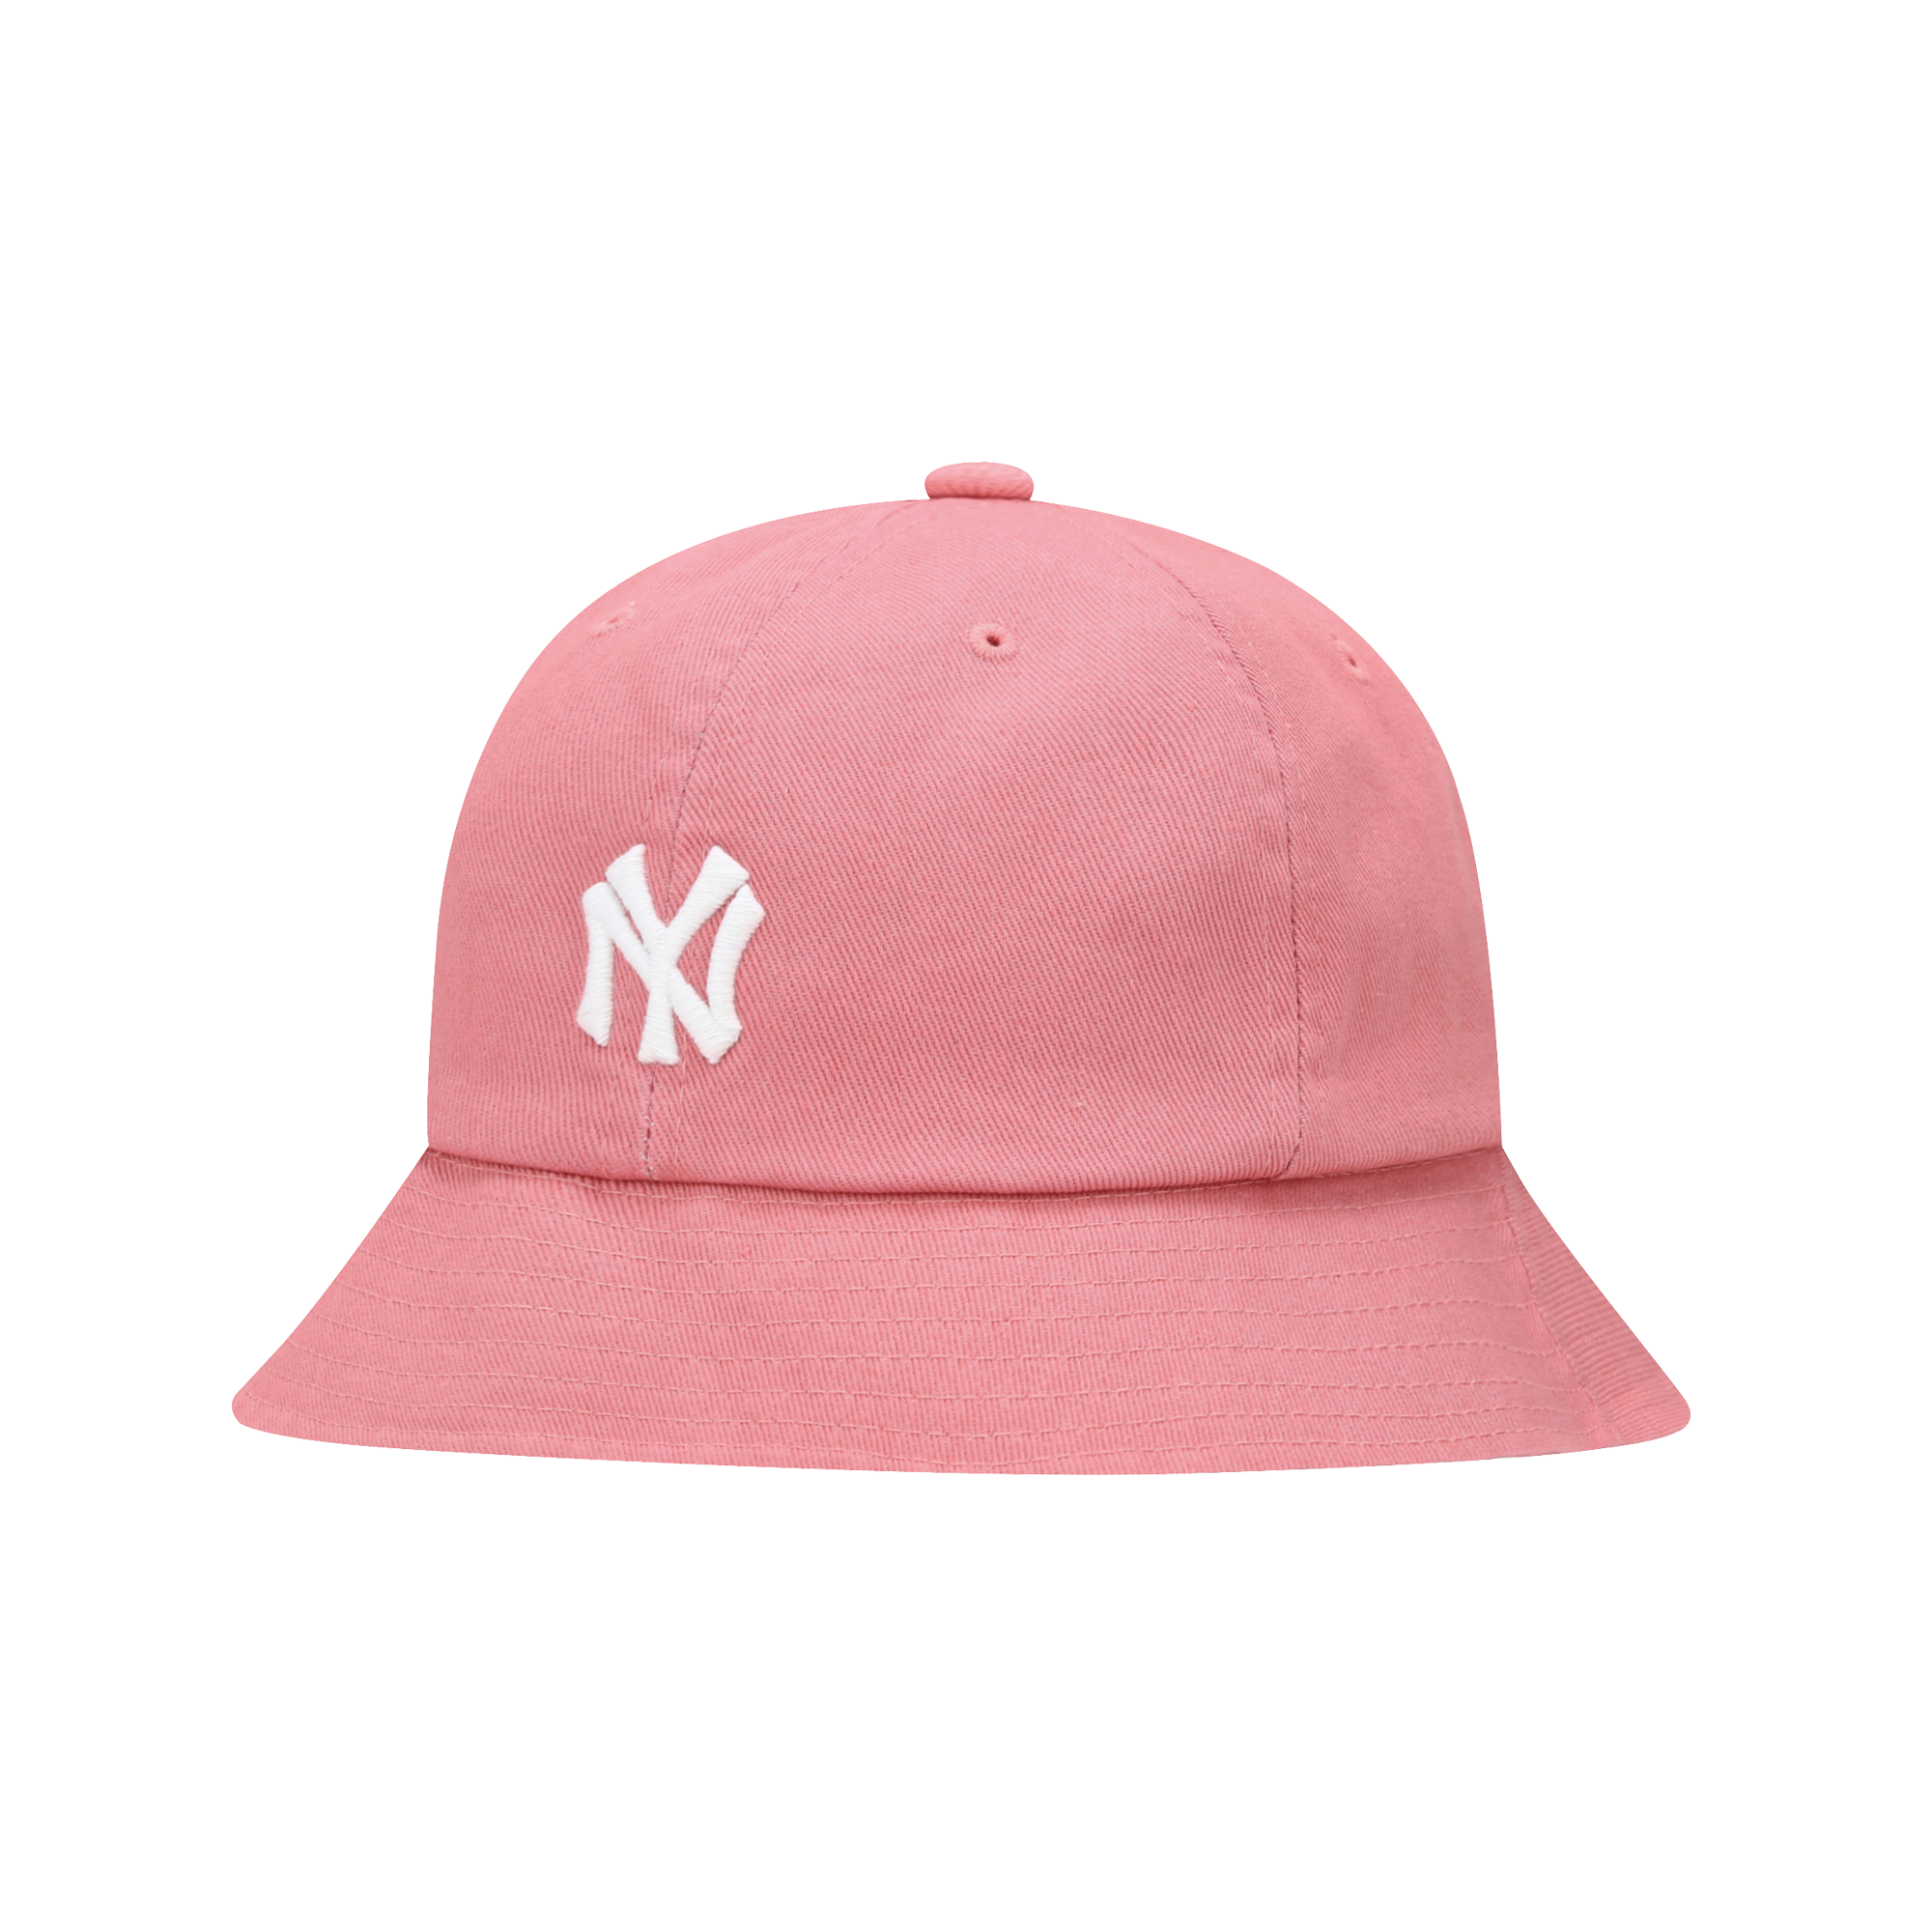 NEW YORK YANKEES COOPERS WASHED-OUT DOME HAT